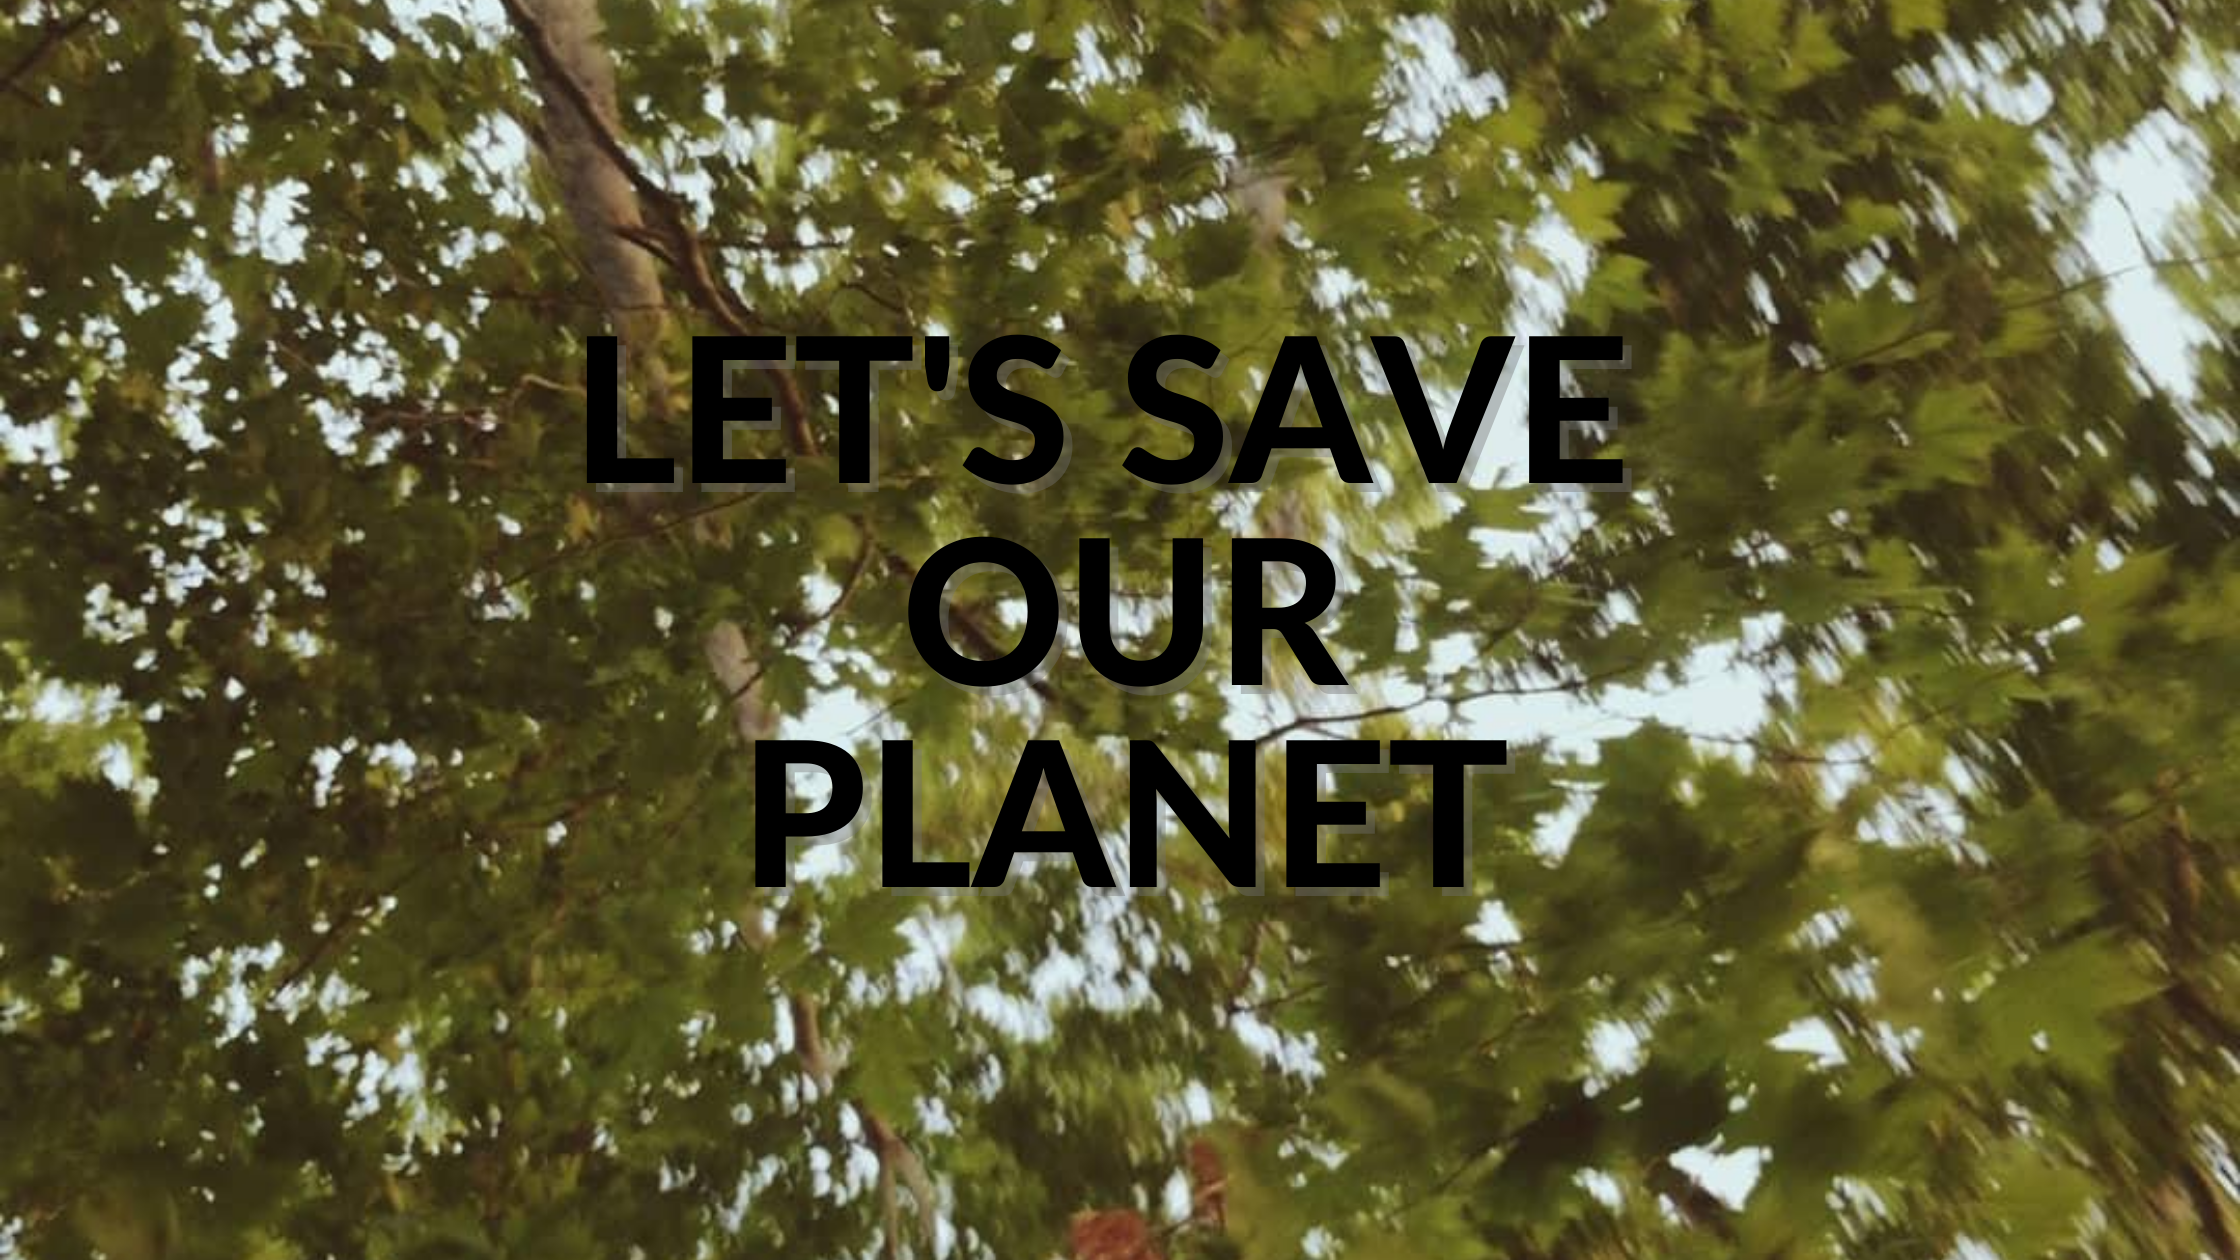 LET'S SAVE OUR PLANET